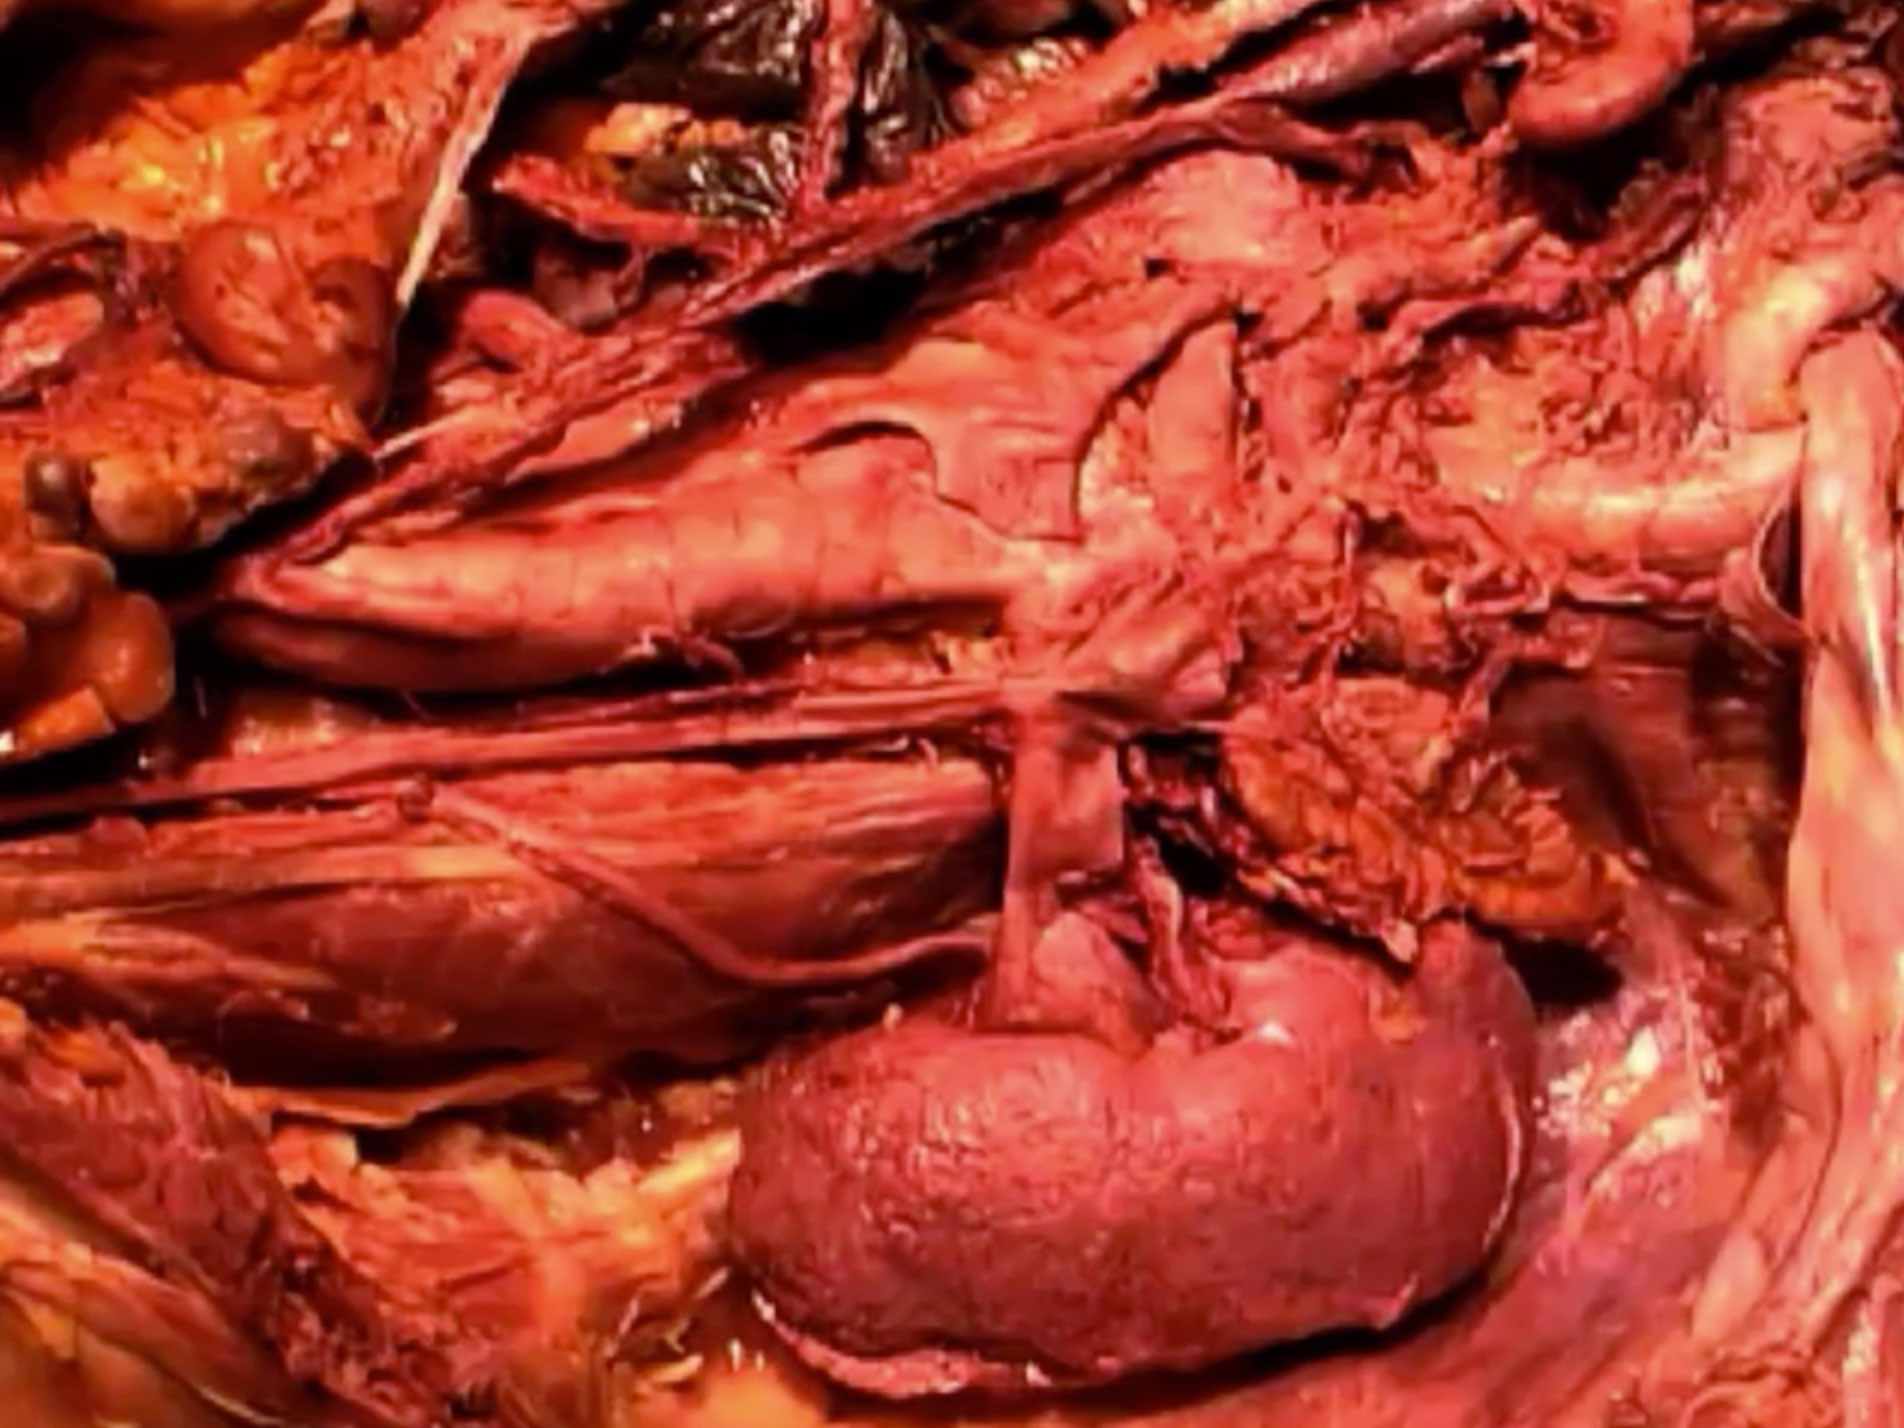 Picture from Dissection 07 Posterior Abdominal Wall video